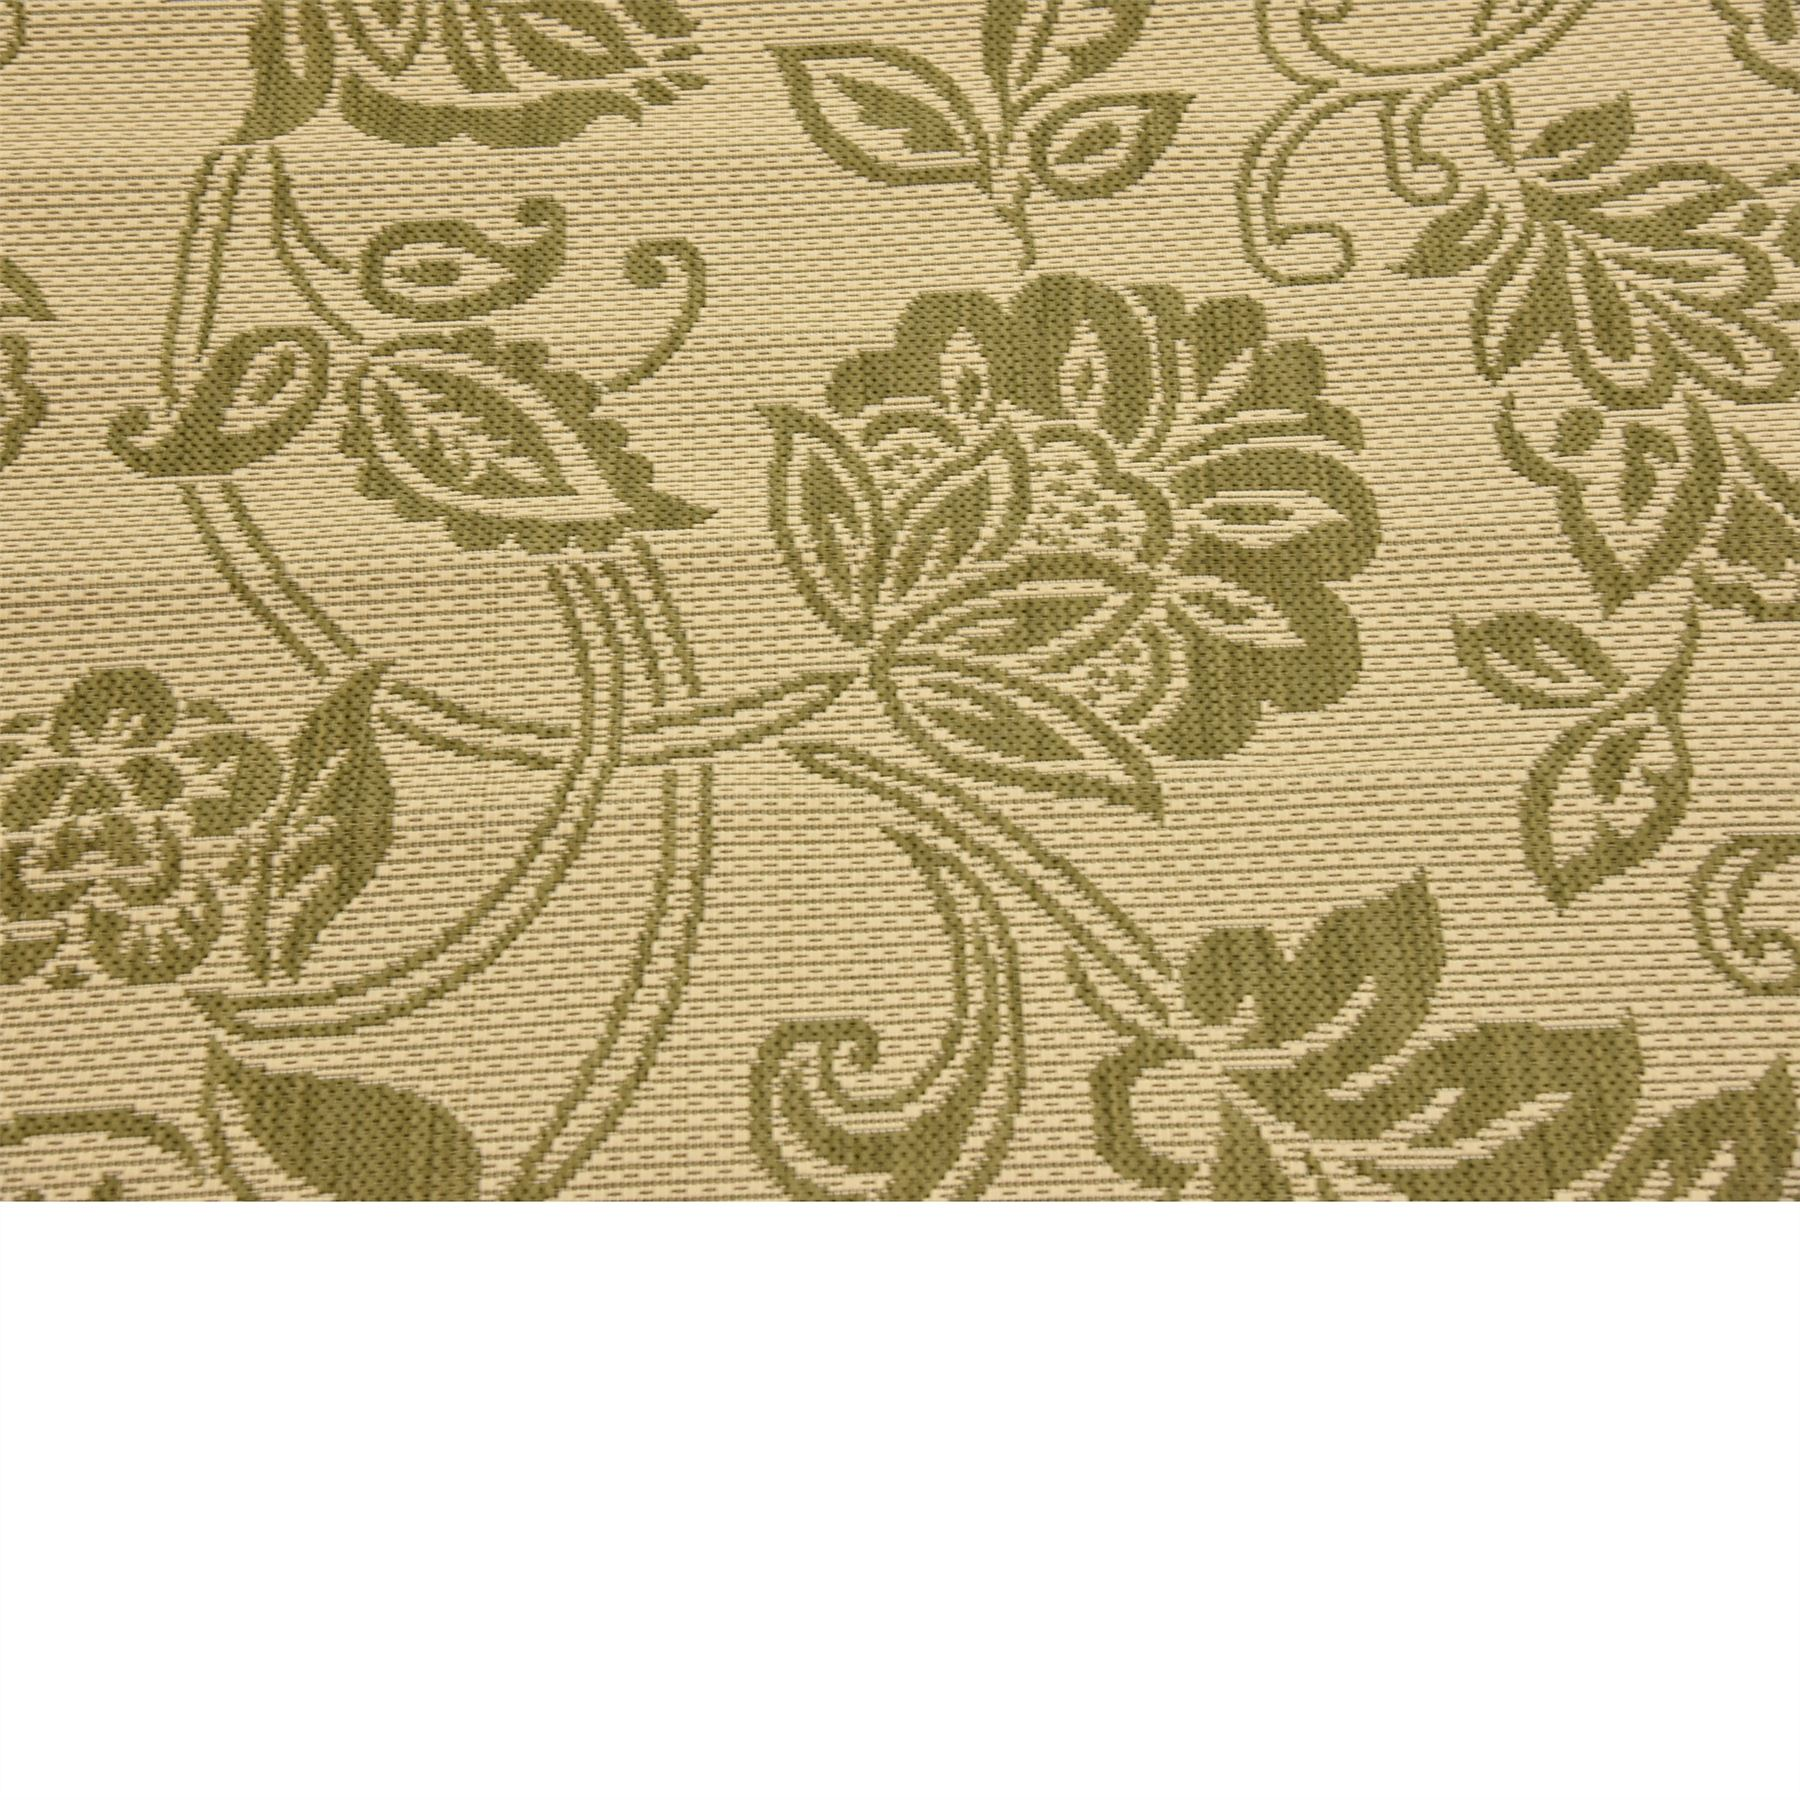 Contemporary Outdoor Area Rugs: Modern Floral Botanical Outdoor Area Rug Contemporary Thin